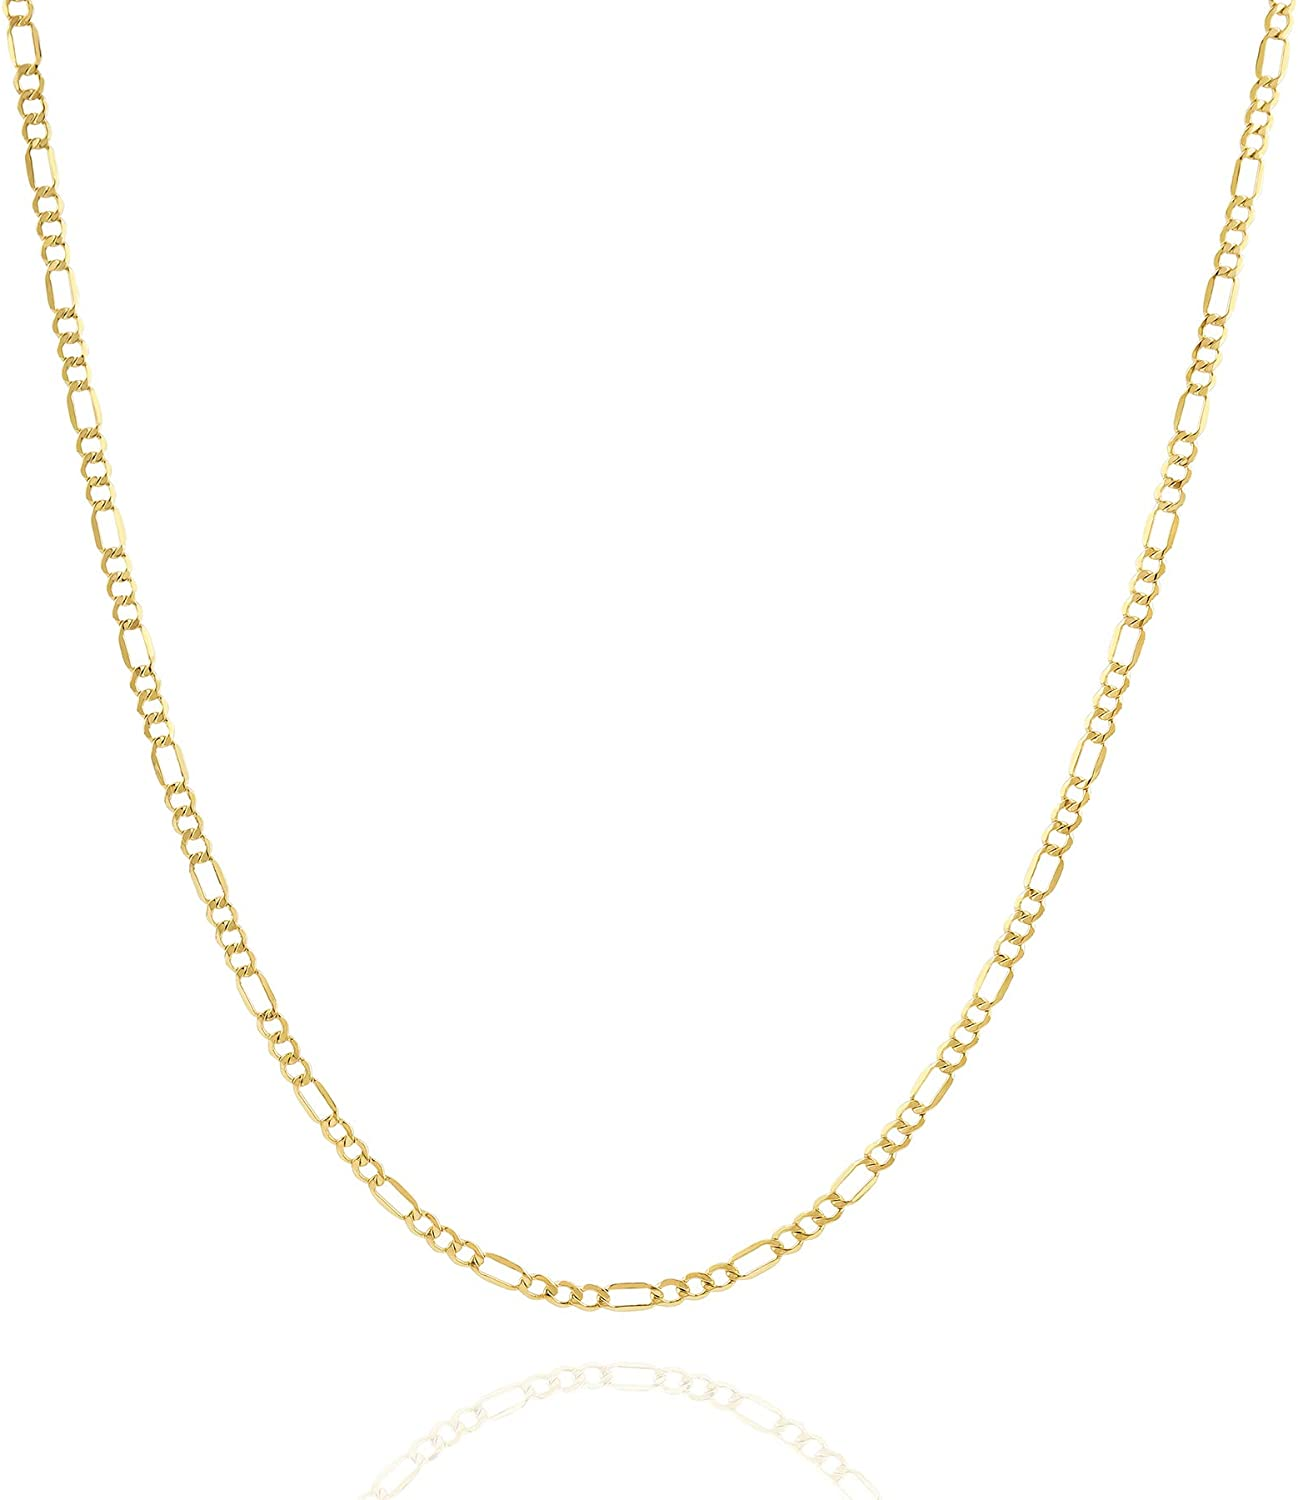 Jewelry Atelier Gold Chain Necklace Collection - 14K Solid Yellow Gold Filled Figaro Chain Necklaces for Women and Men with Different Sizes (2.8mm, 3.7mm, 4.7mm, 5.6mm)